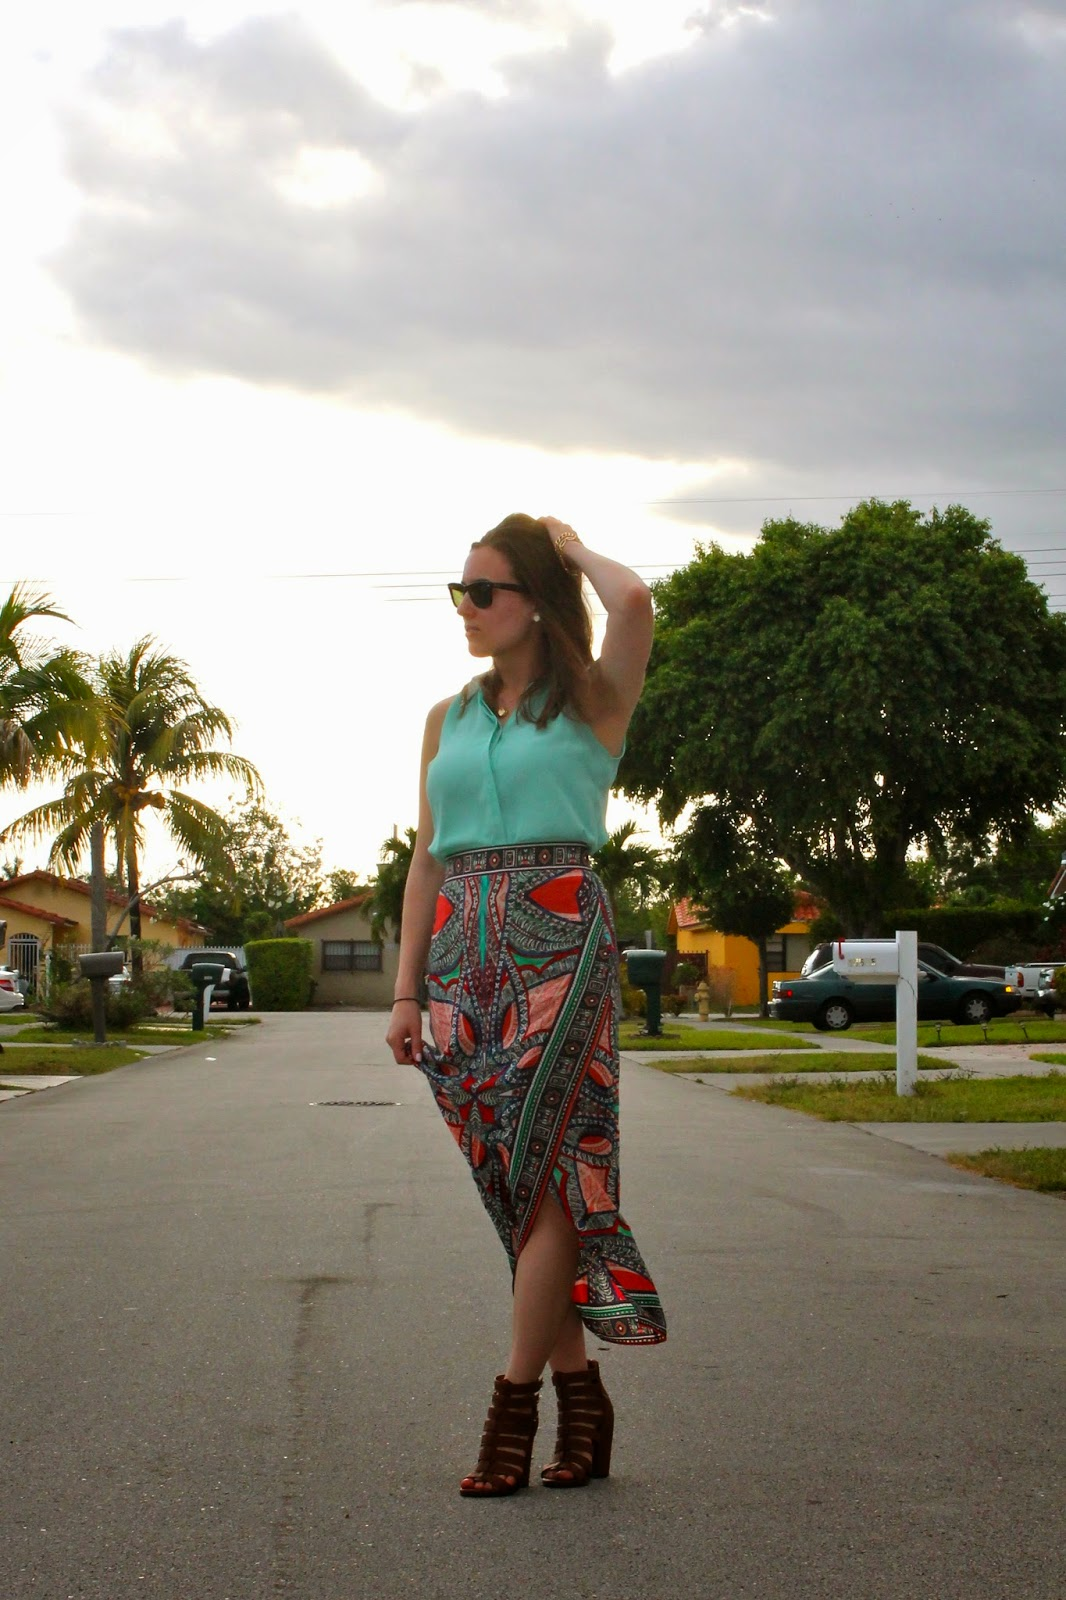 Franchesca's Collection, Anthropologie, Steve Madden, Ray-Ban, style blog, fashion blog, fashion blogger, Miami fashion, look book, outfit ideas